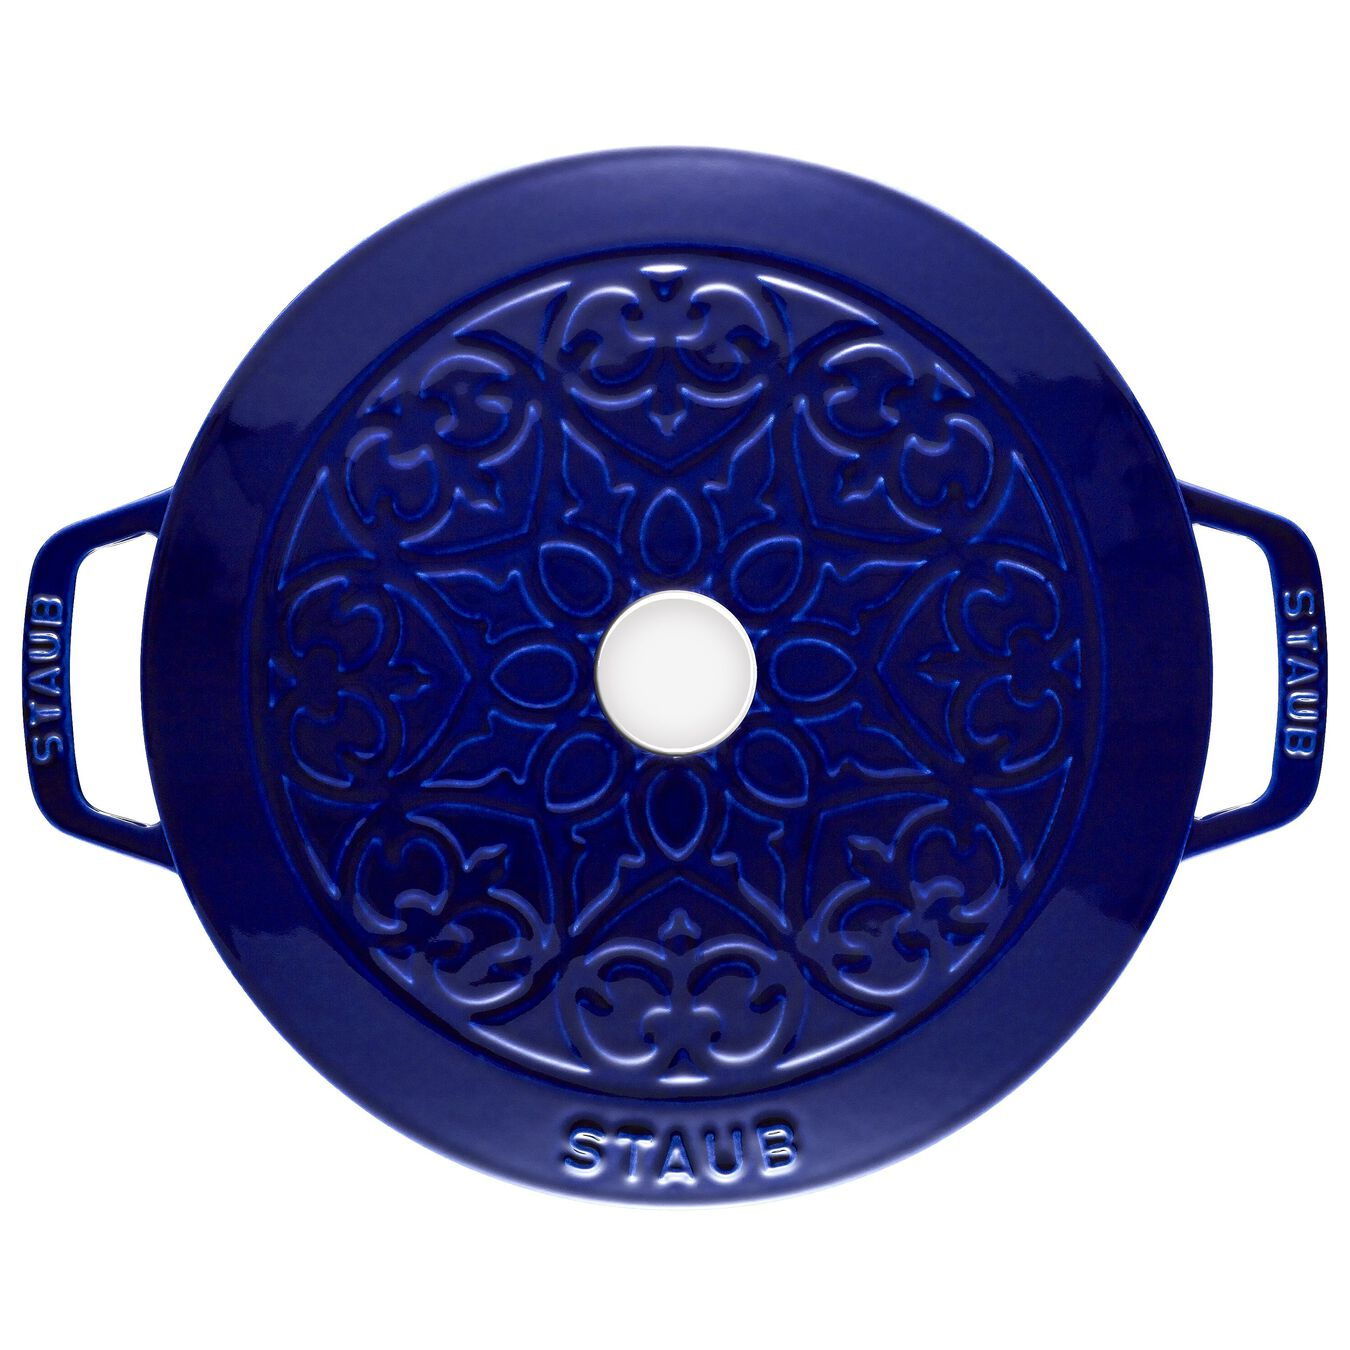 5-qt Essential French Oven with Lilly Lid - Visual Imperfections - Dark Blue,,large 3